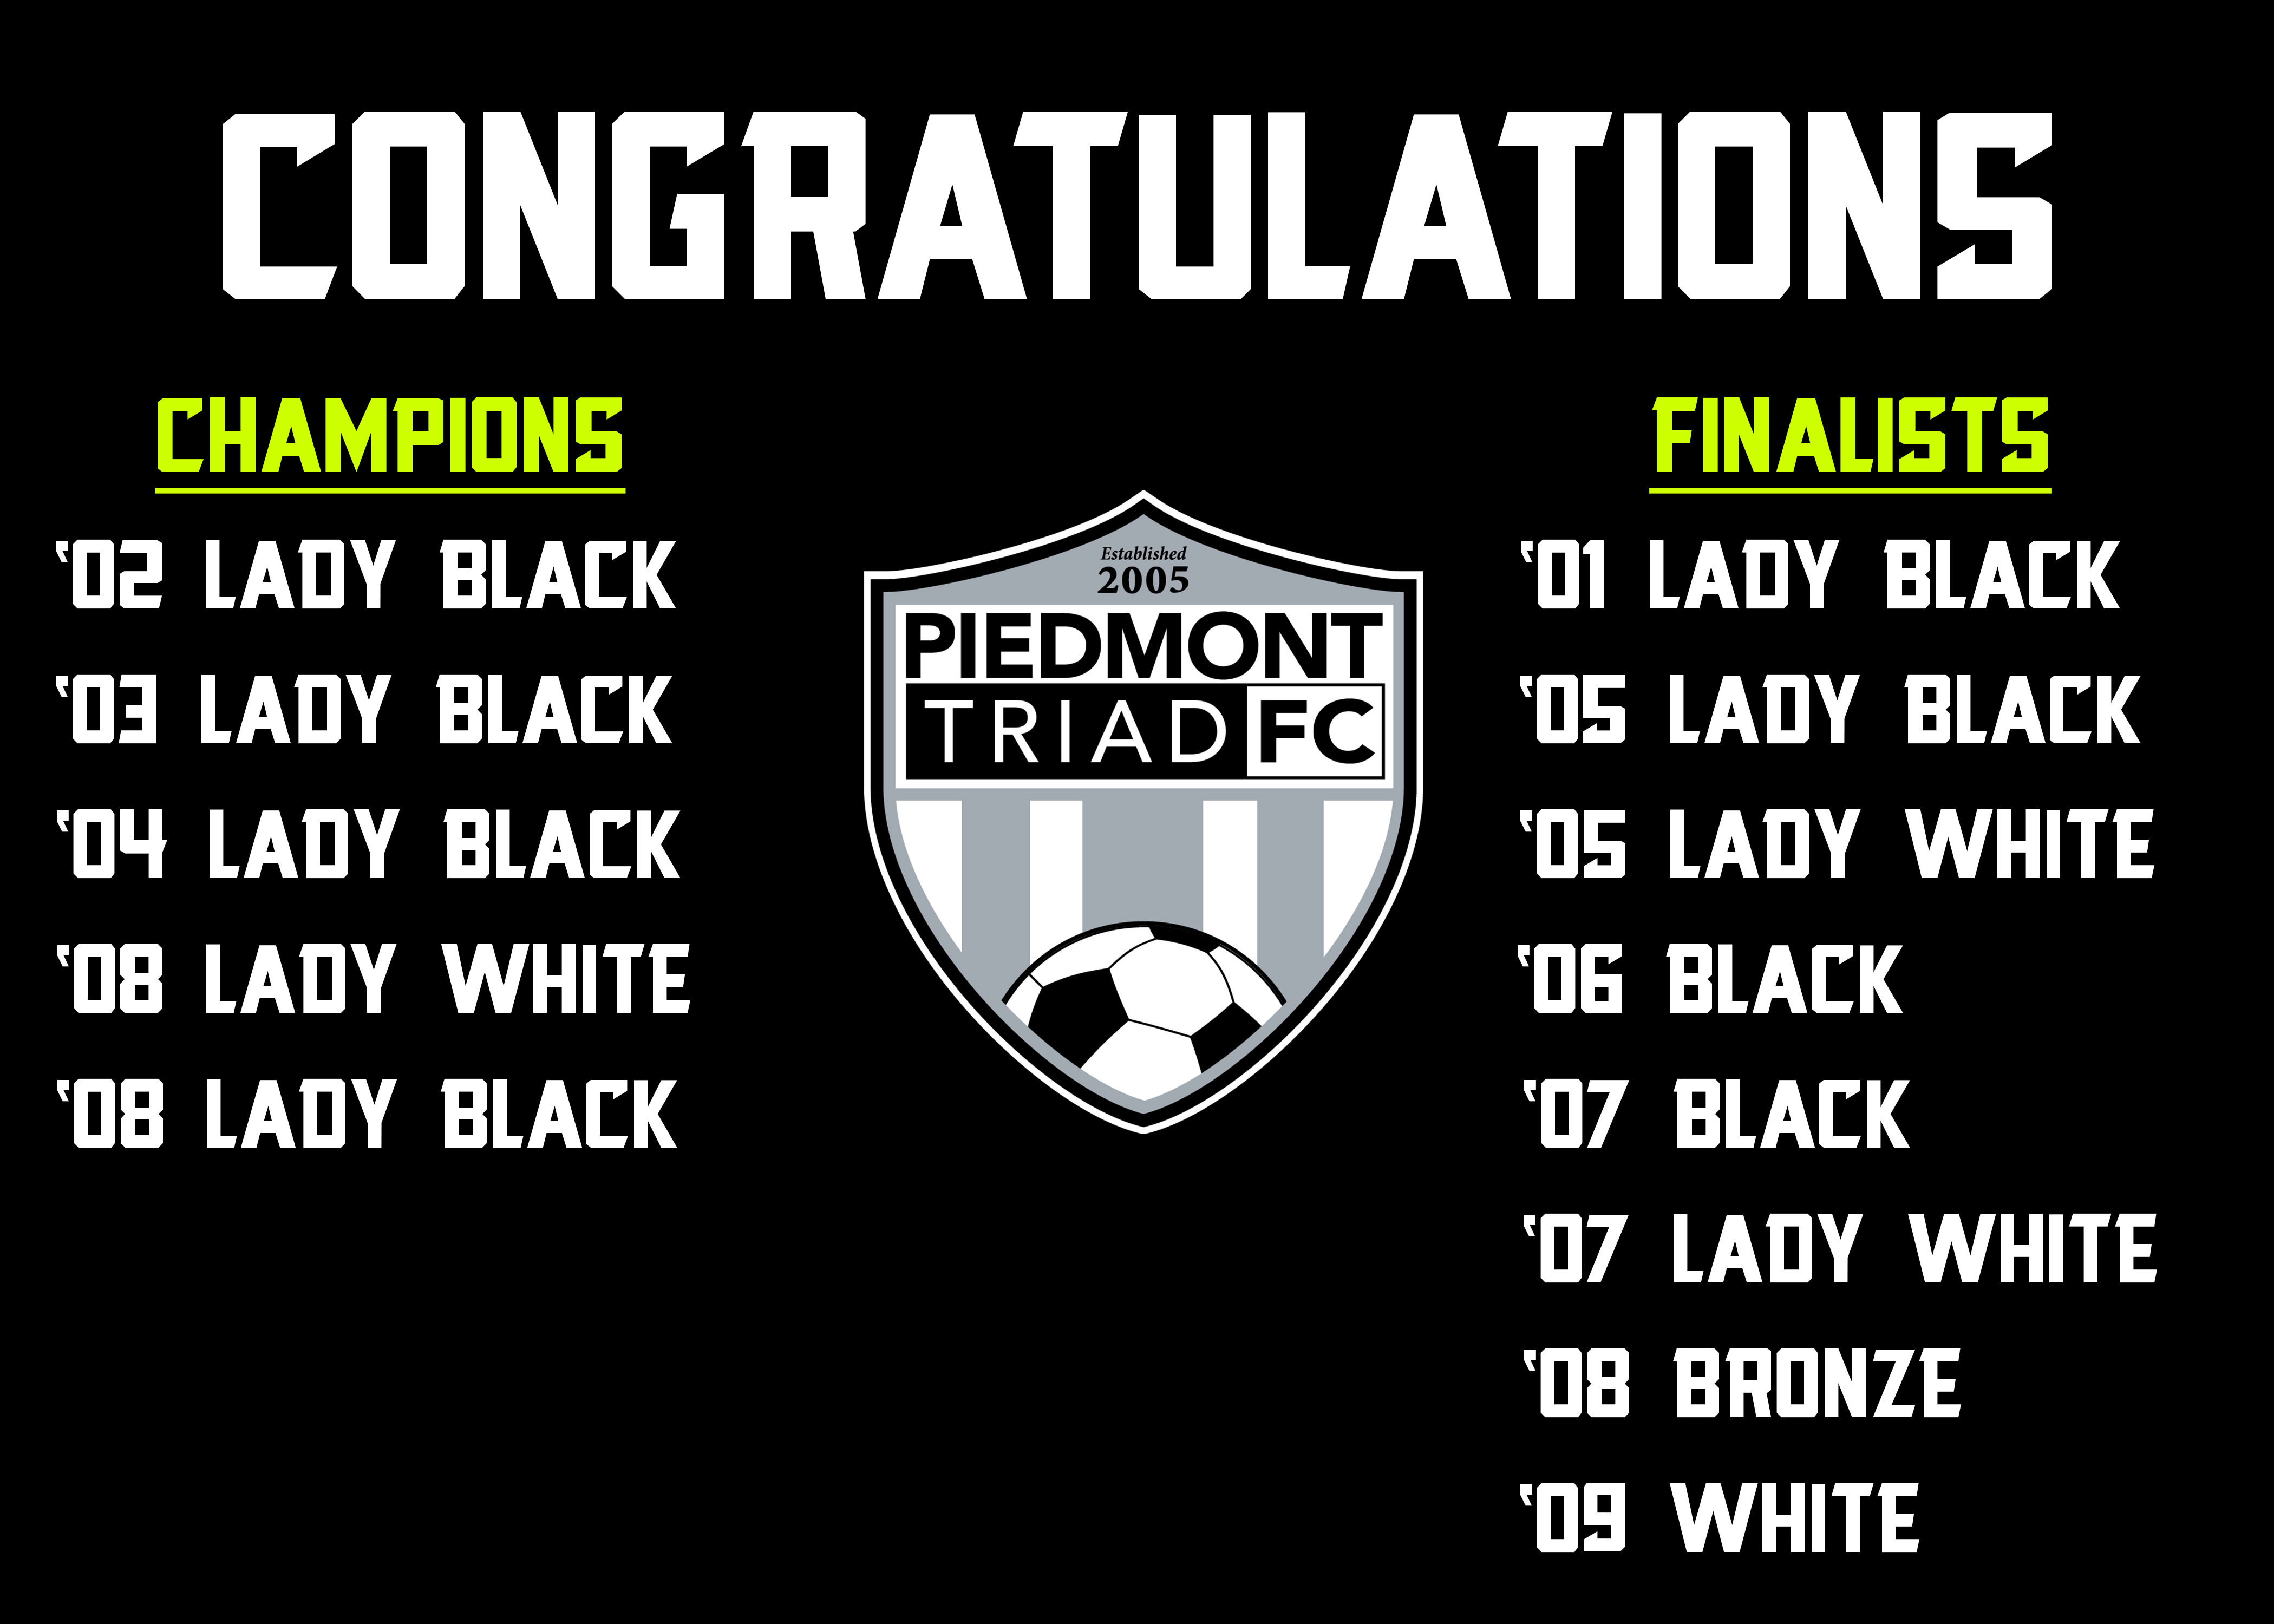 Congratulations To FCC Champions and Finalists!